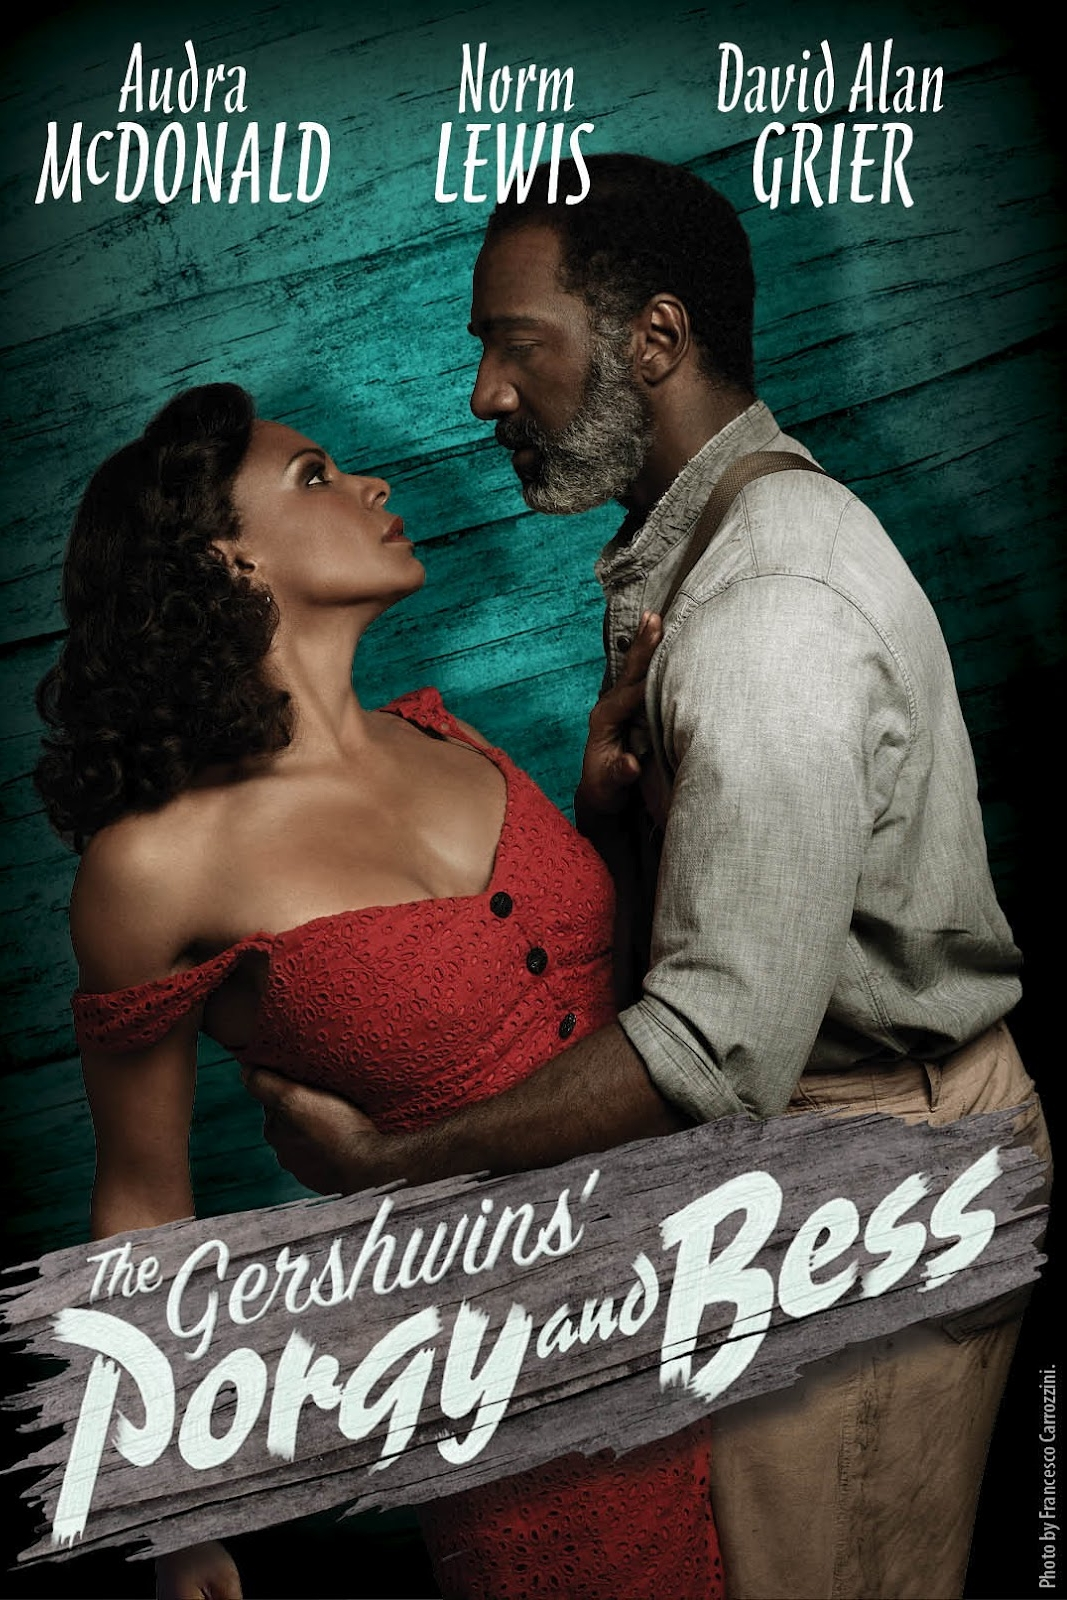 porgy and bess.jpg